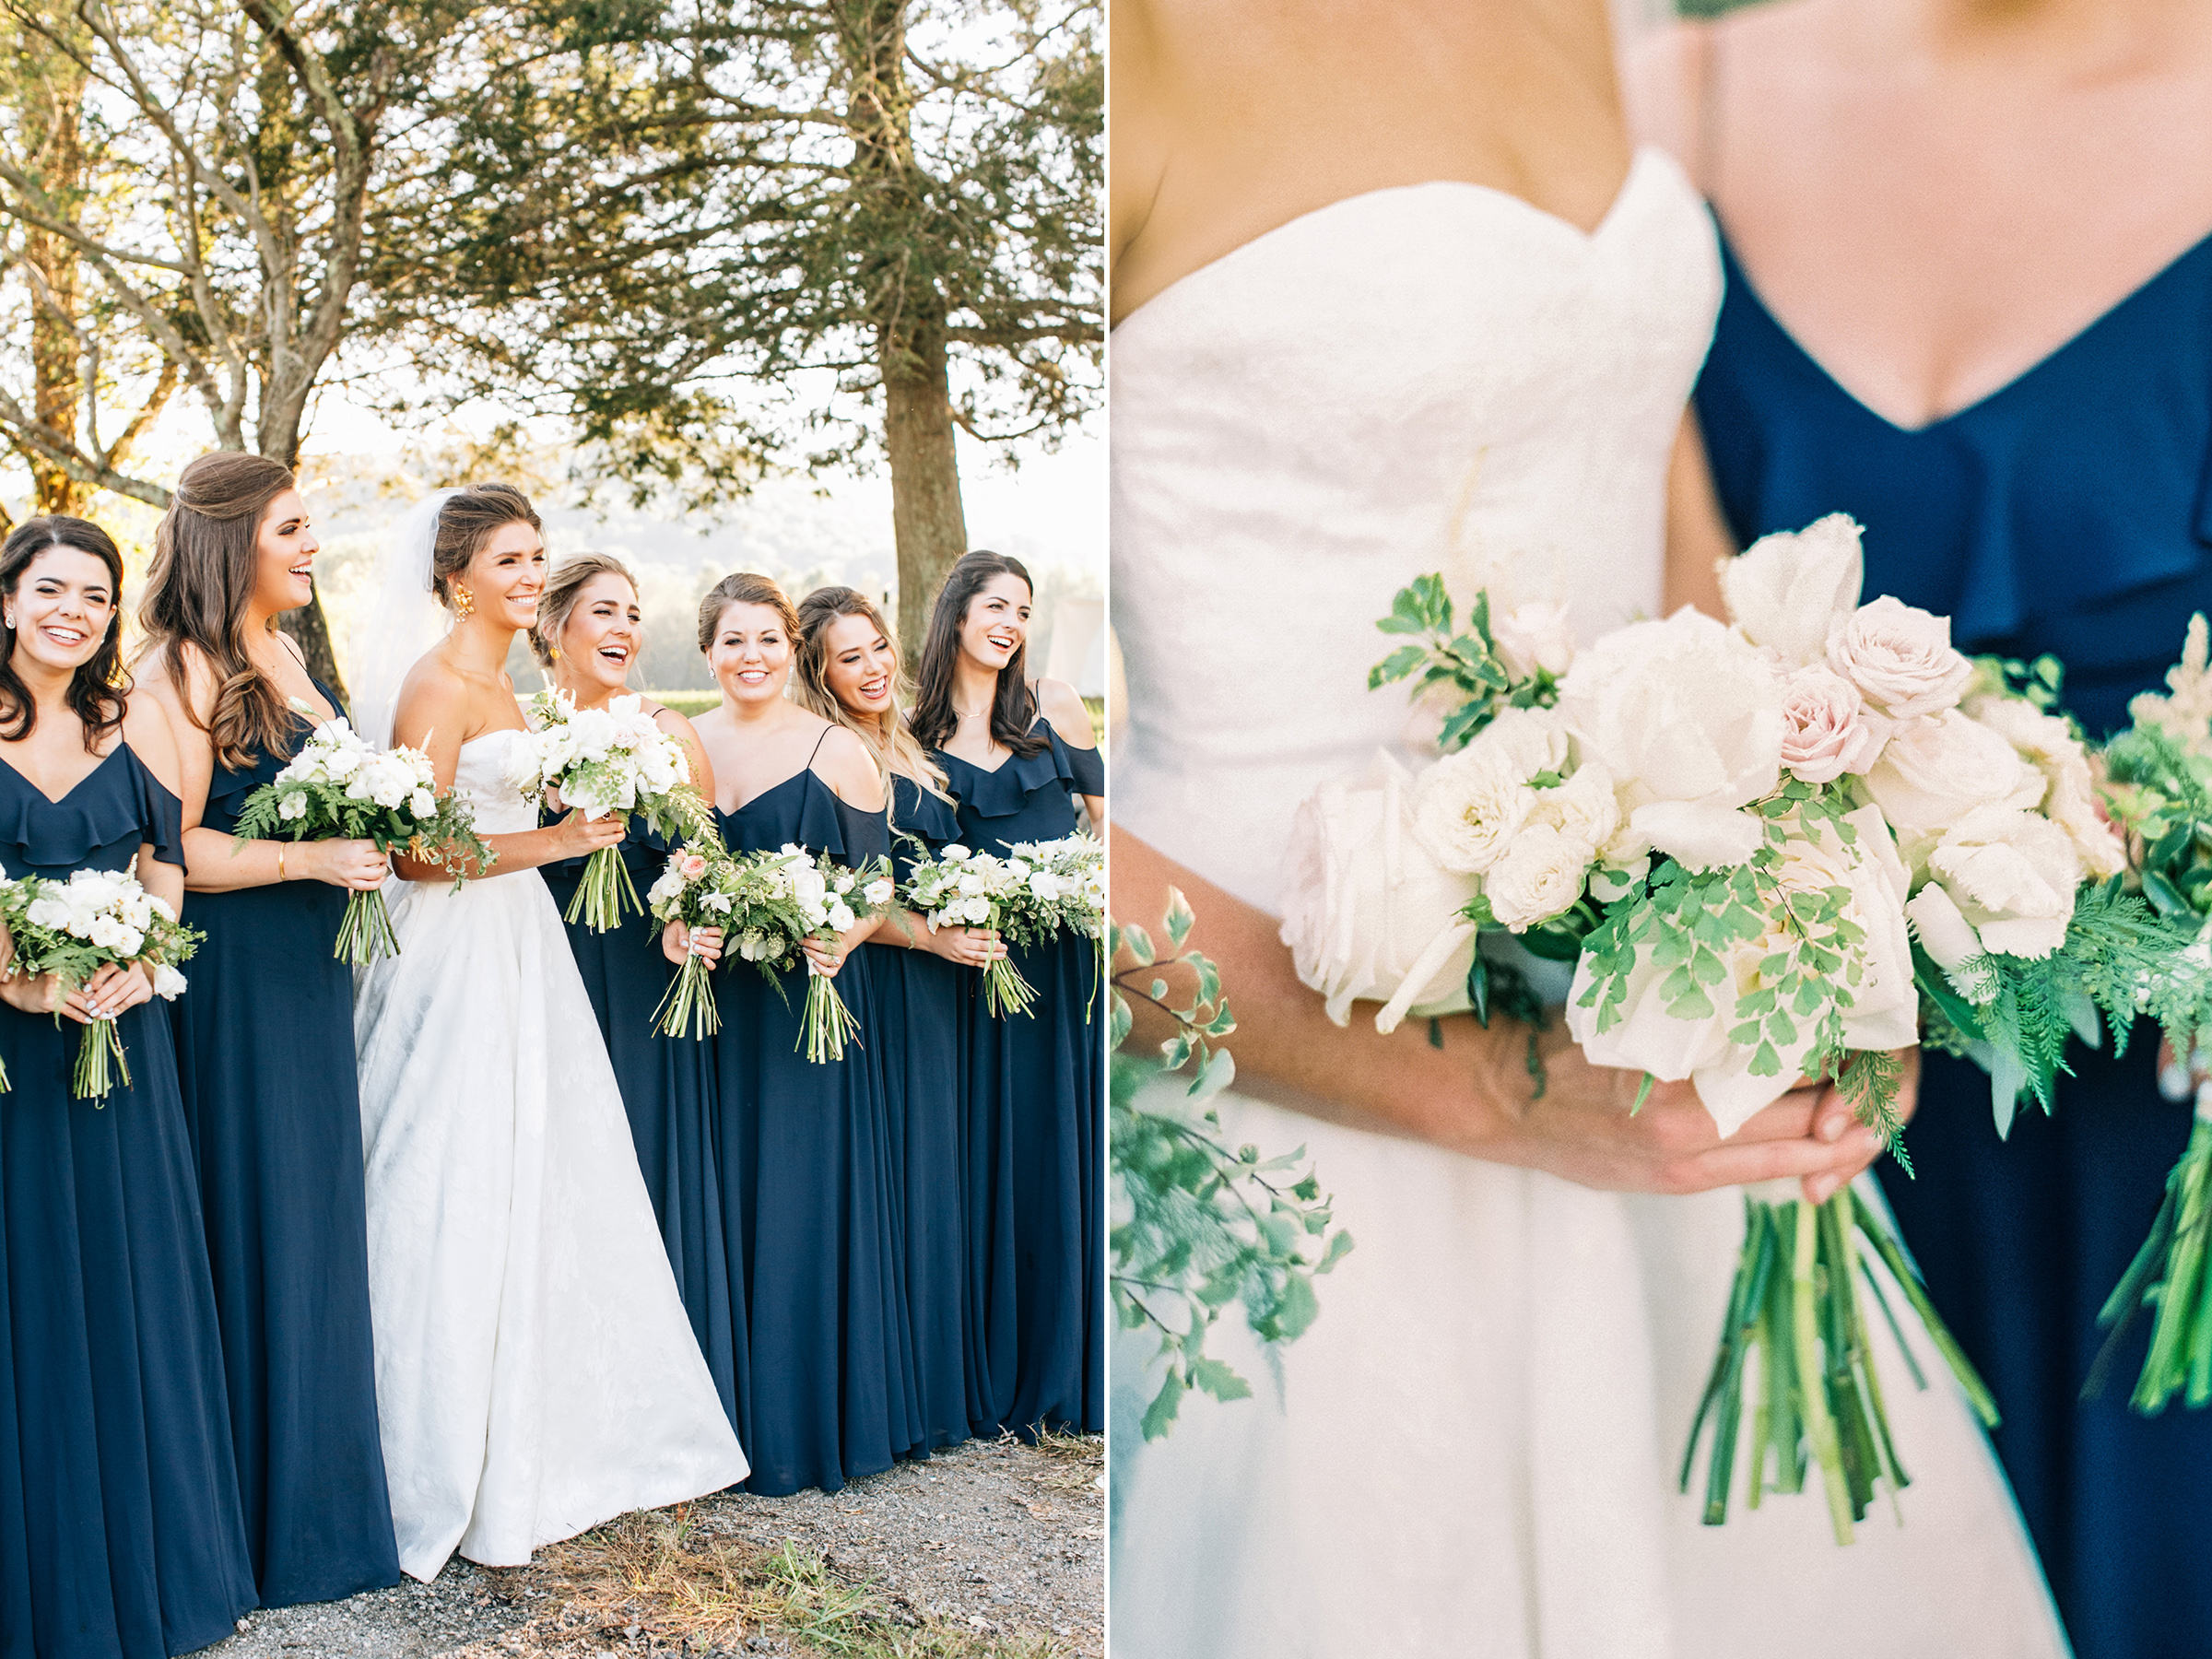 KatieStoopsPhotography-charlottesville wedding-farm wedding24.jpg